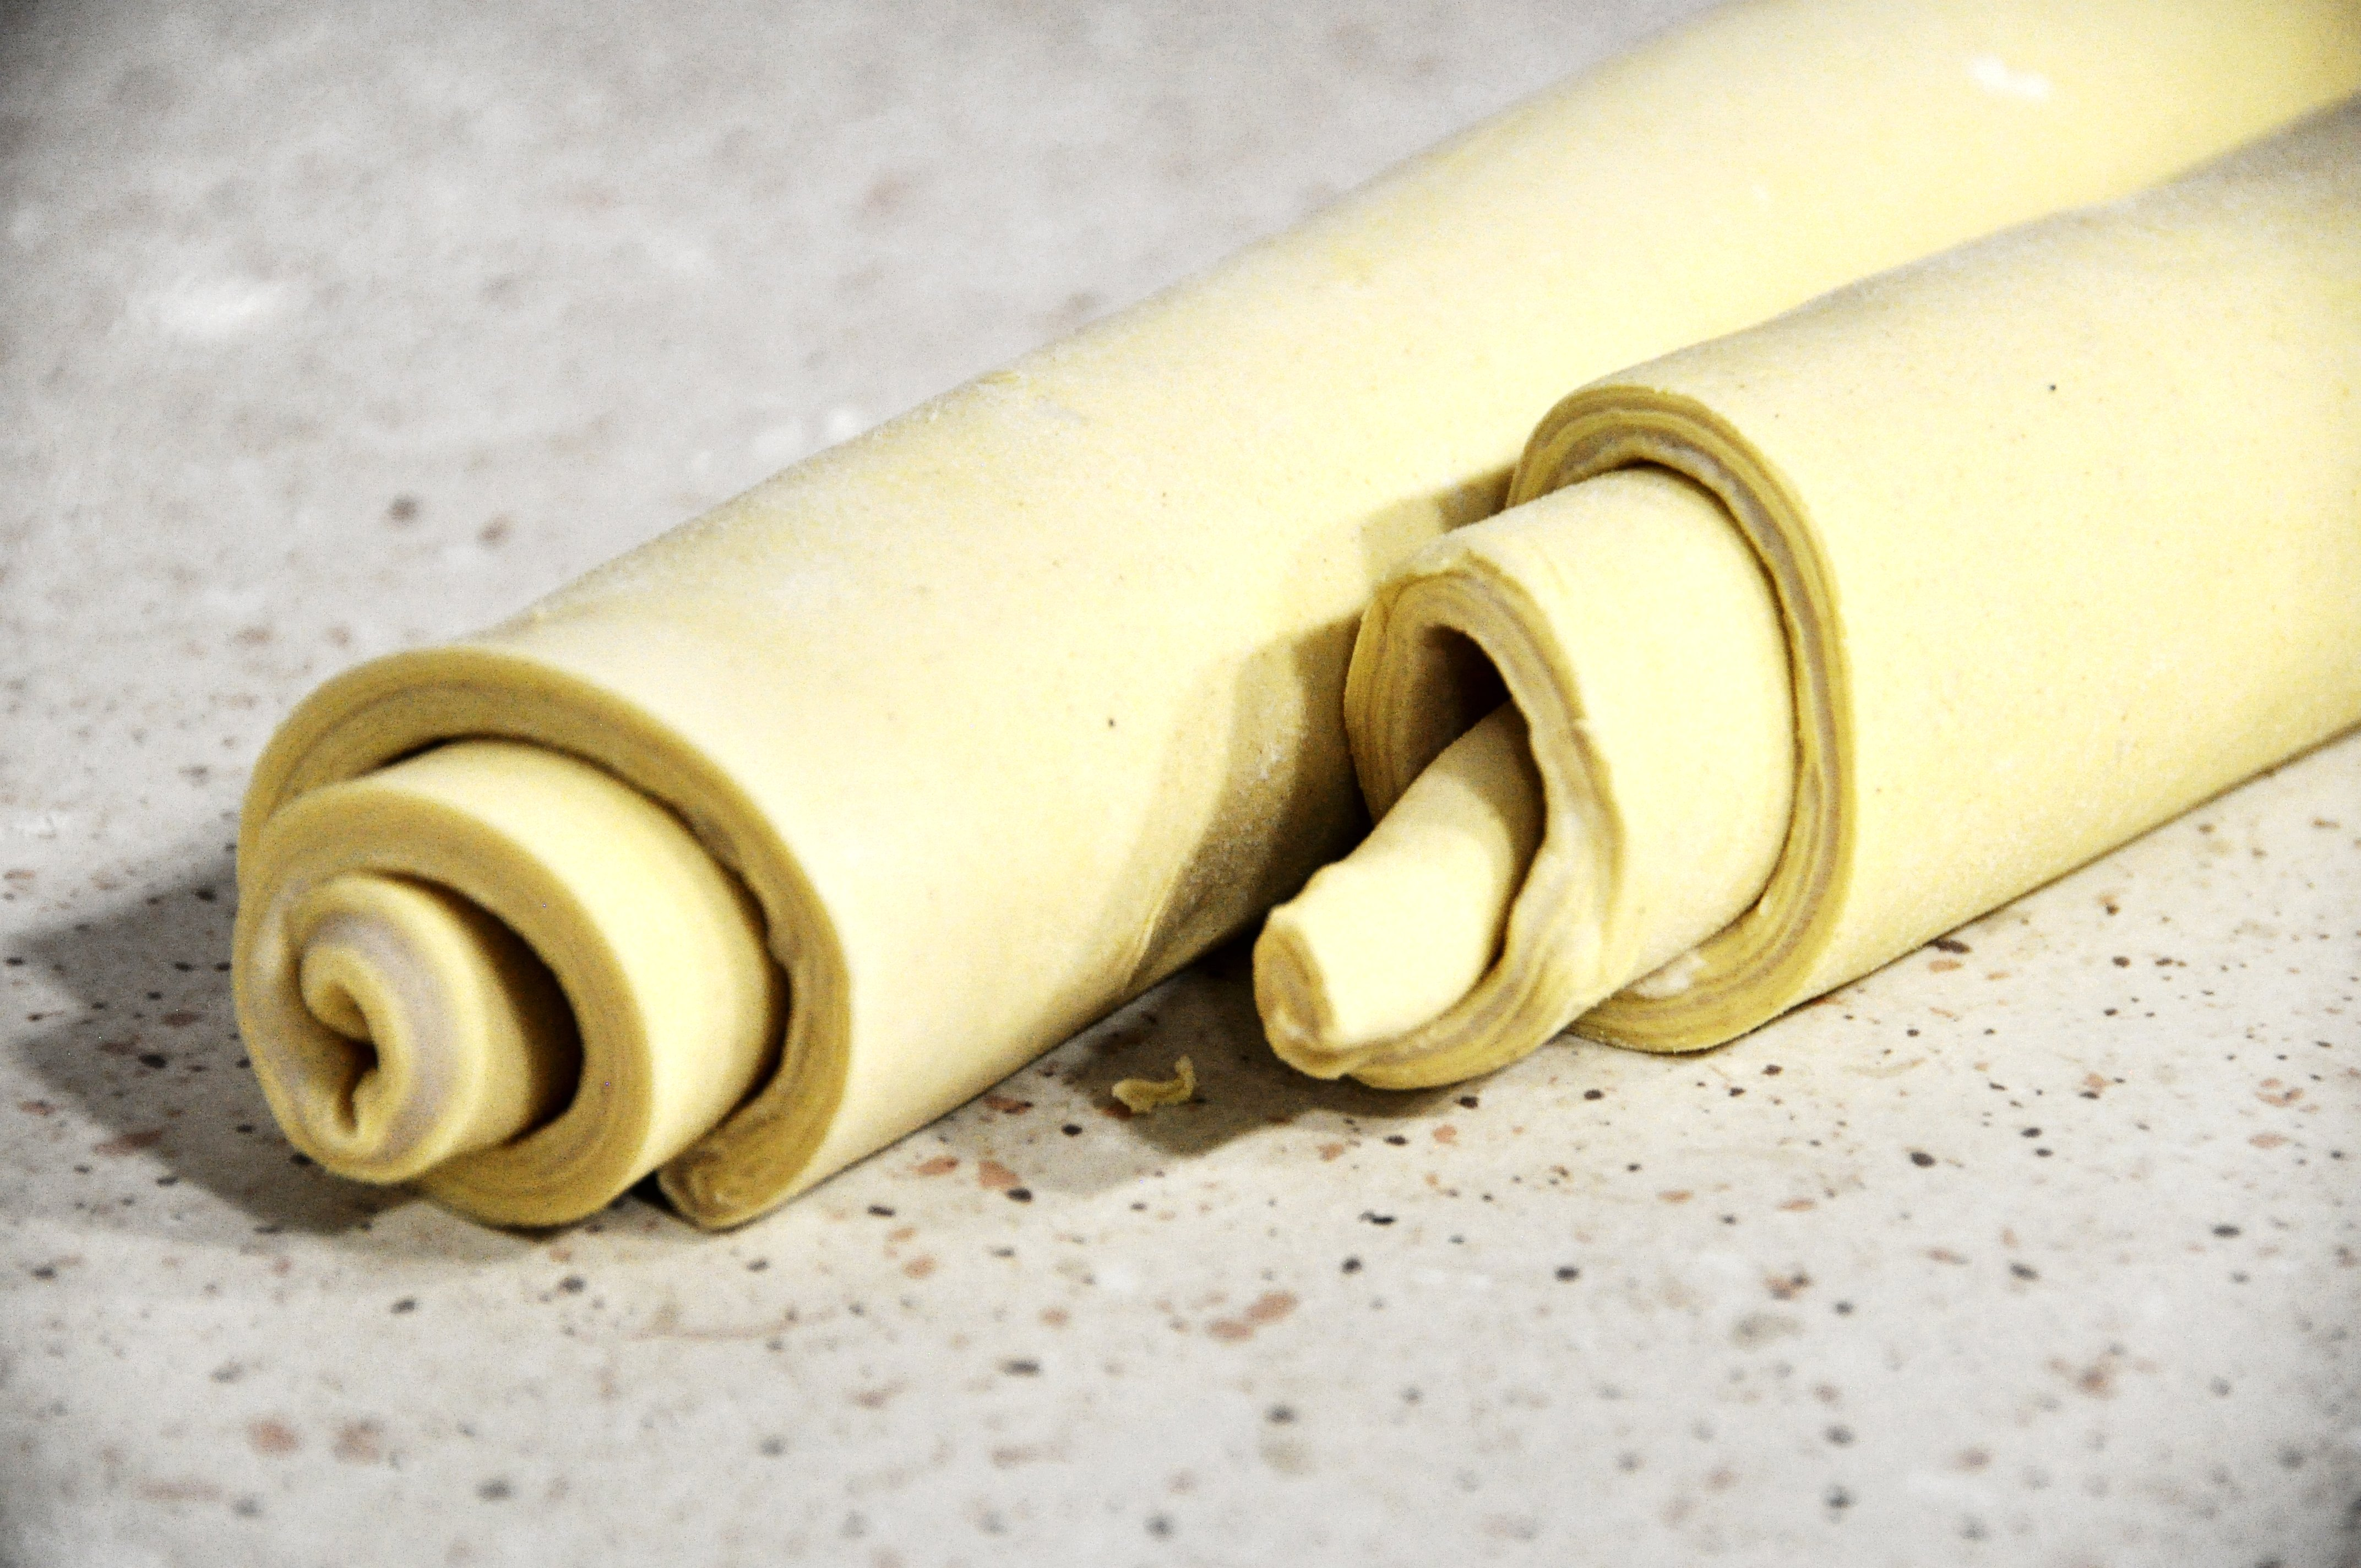 Rolled up dough